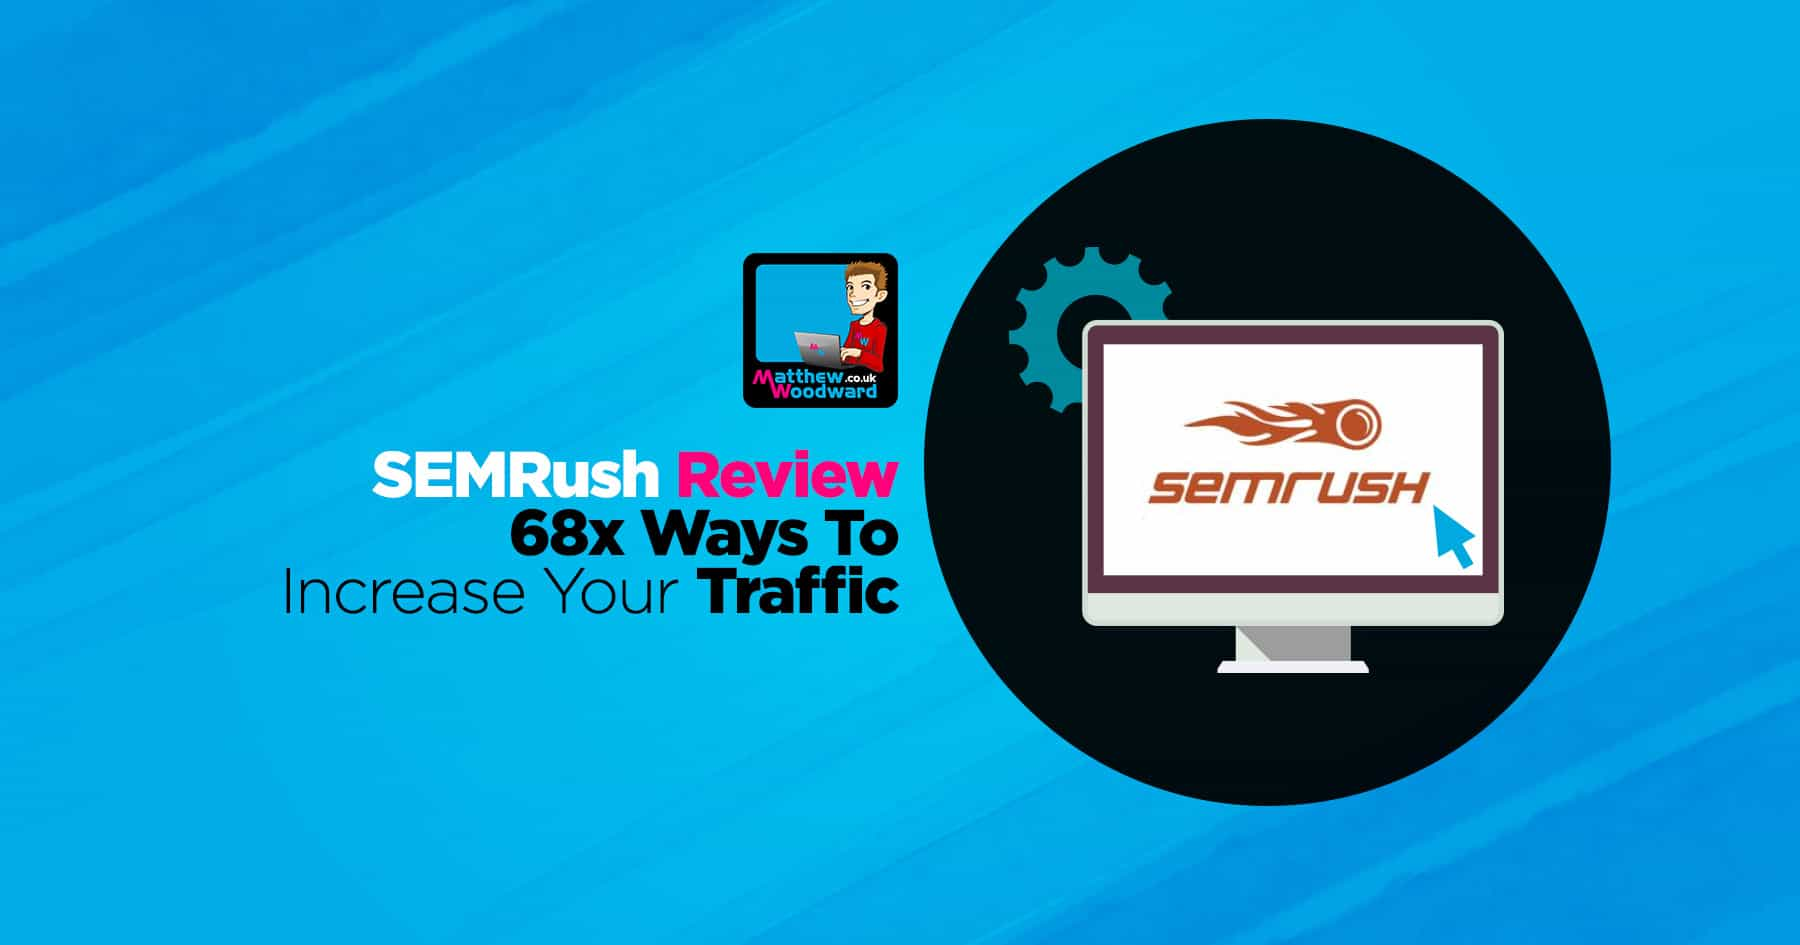 Semrush Website Coupons April